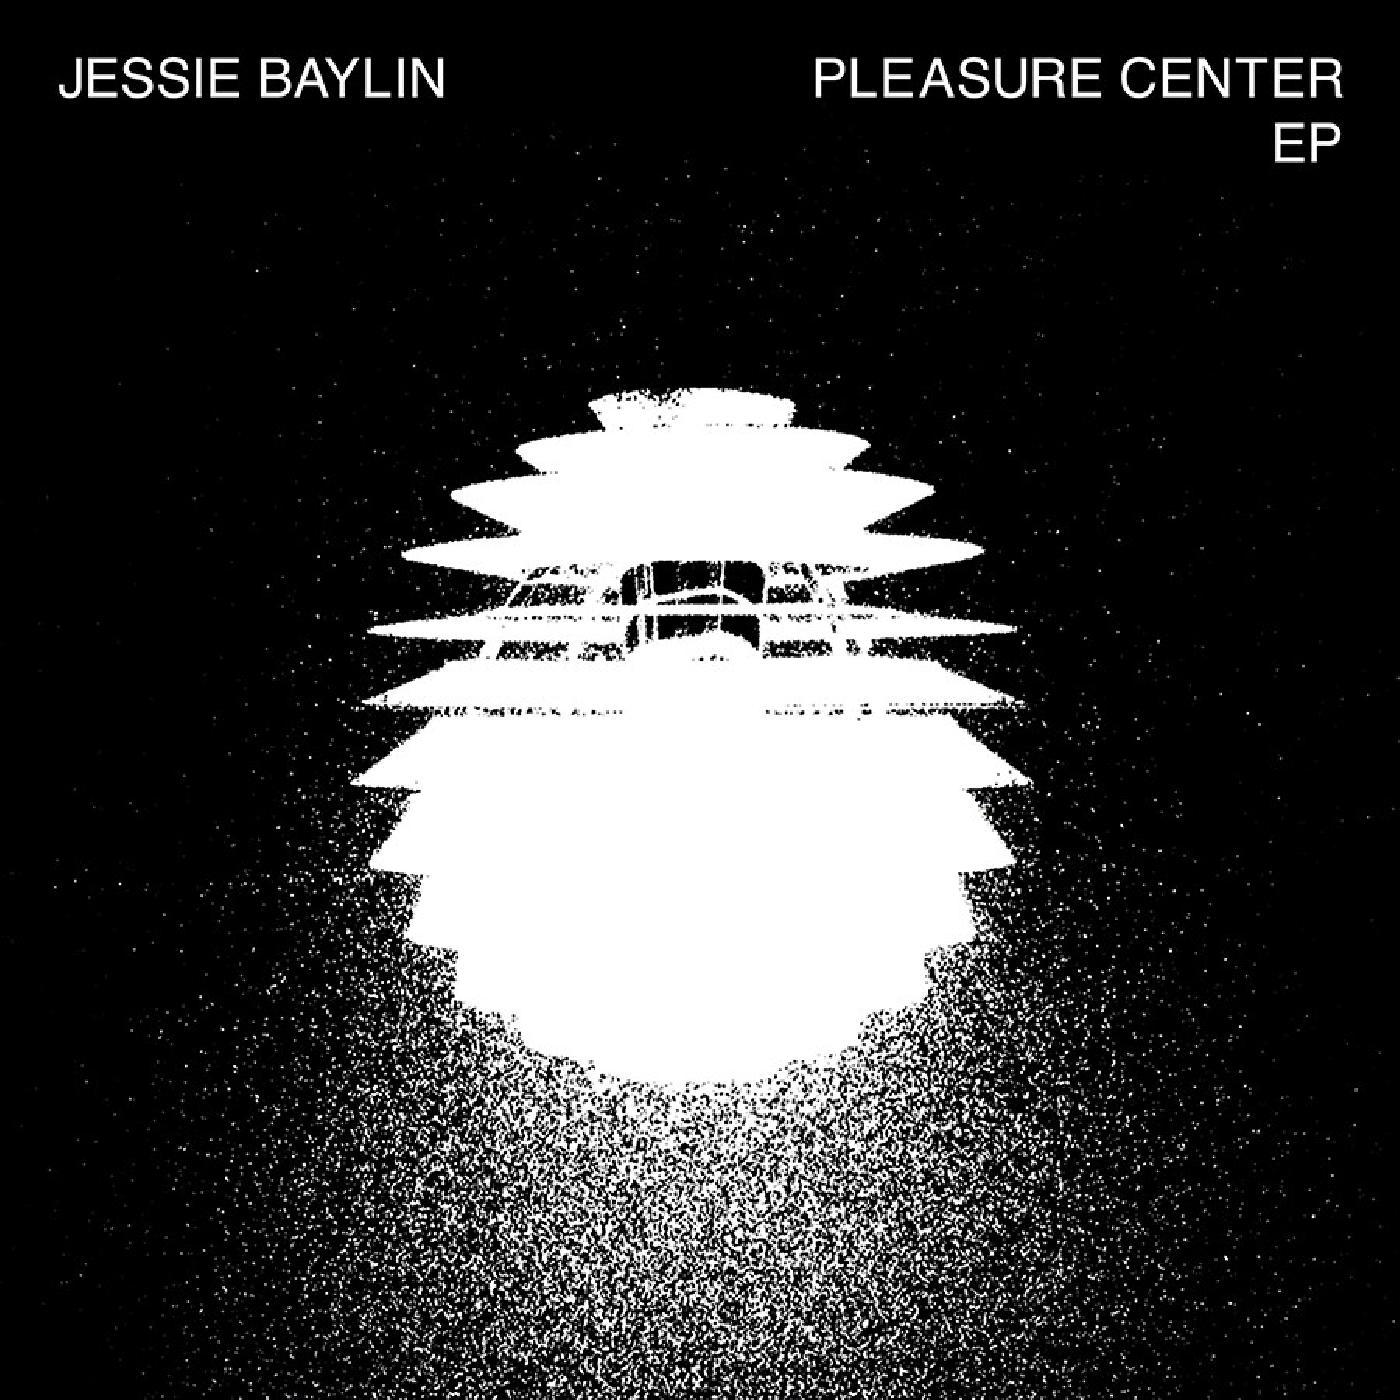 Jessie Baylin - Pleasure Center EP [RSD Drops Oct 2020]